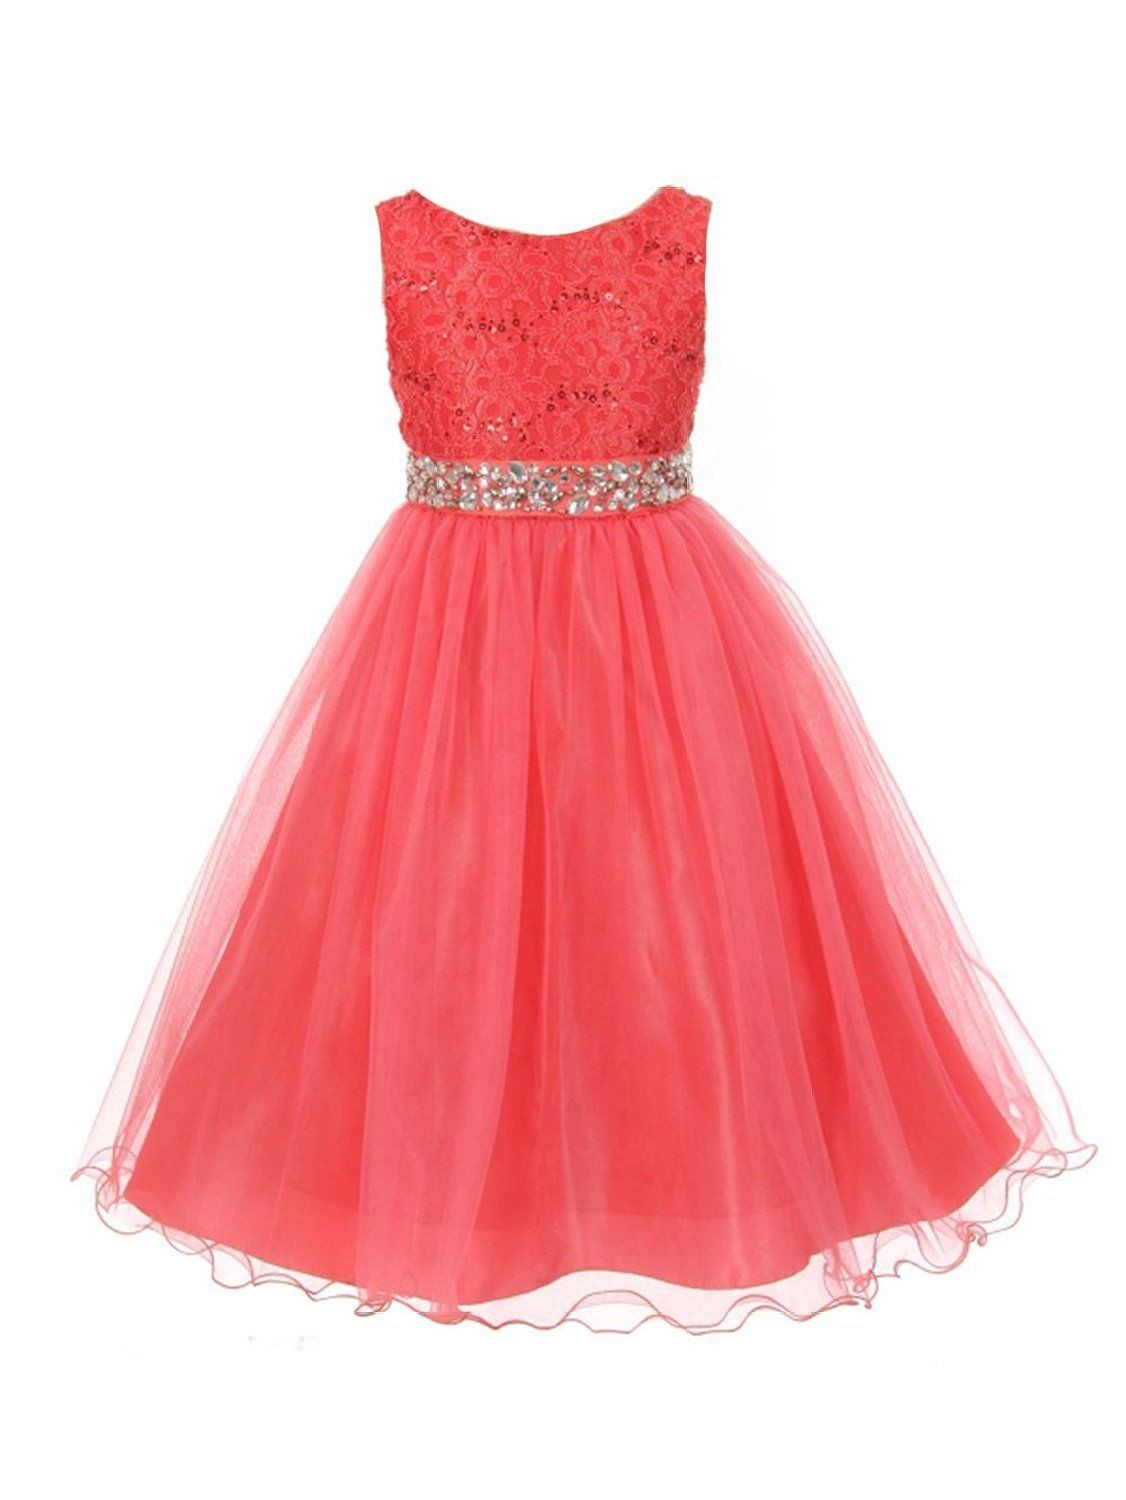 a7f366c0546 Amazon.com  JM Dreamline Sleeveless Shiny Tulle Flower Girls Dress with  Beaded Waist  Clothing